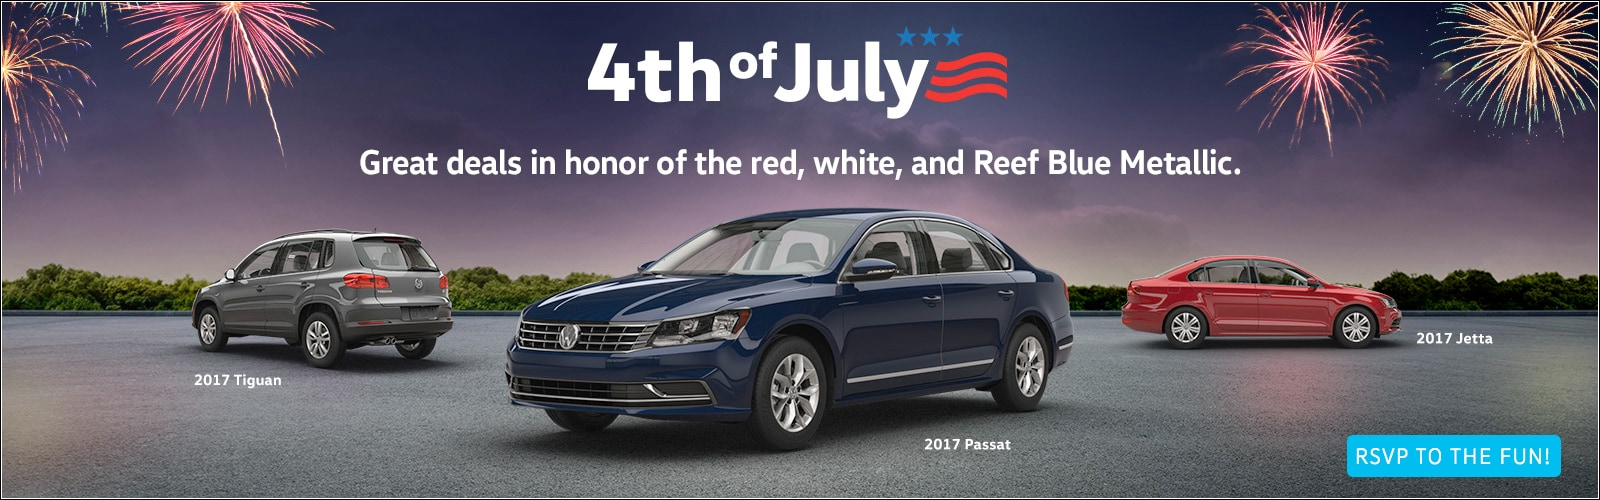 4th of July Event at VW Tucson!